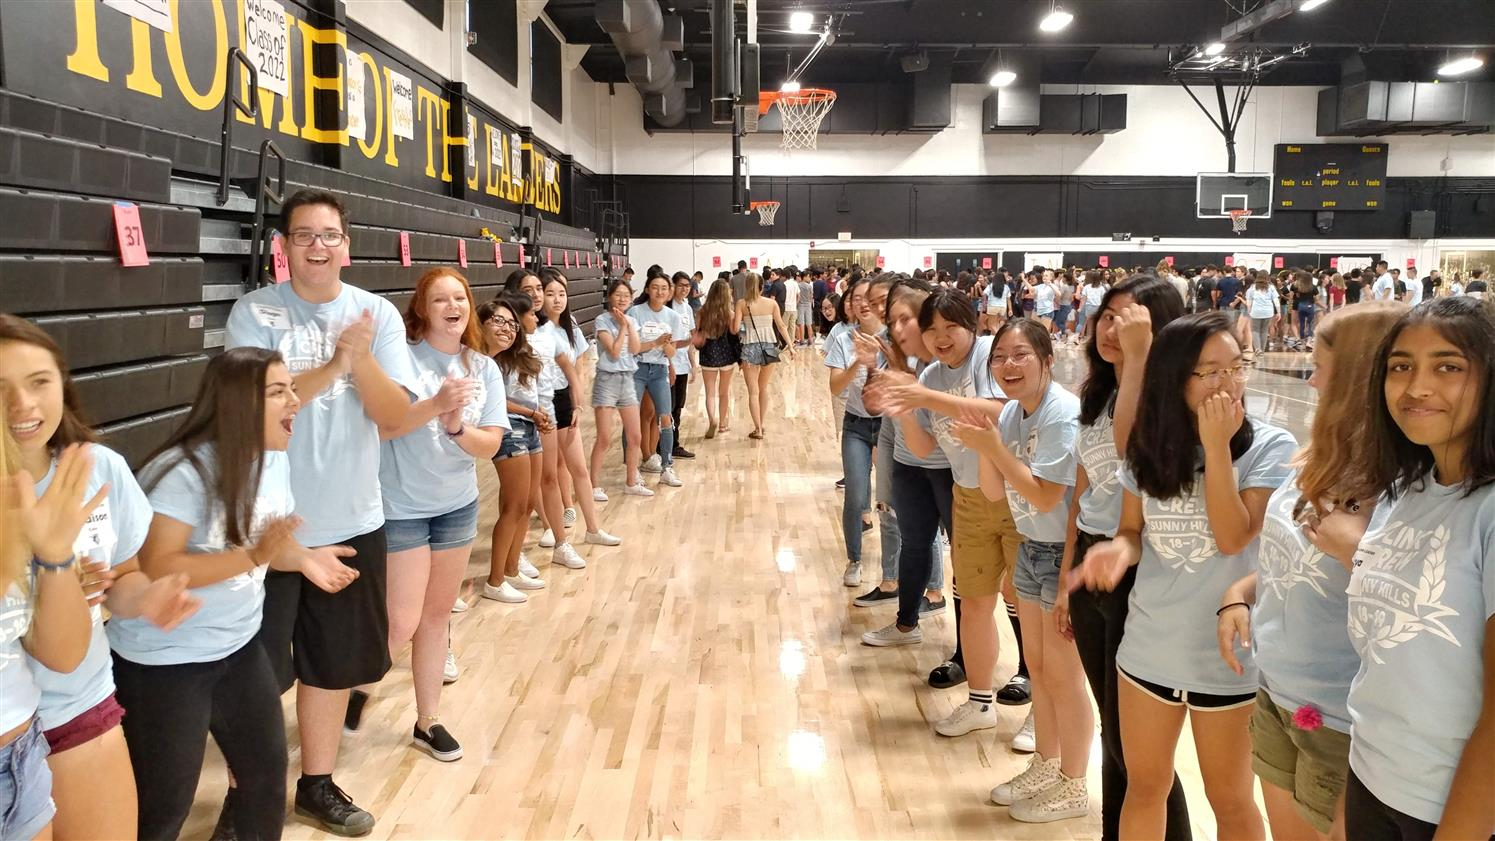 Sunny Hills High School / Homepage pertaining to Sunny Hills High School Calendar 2021